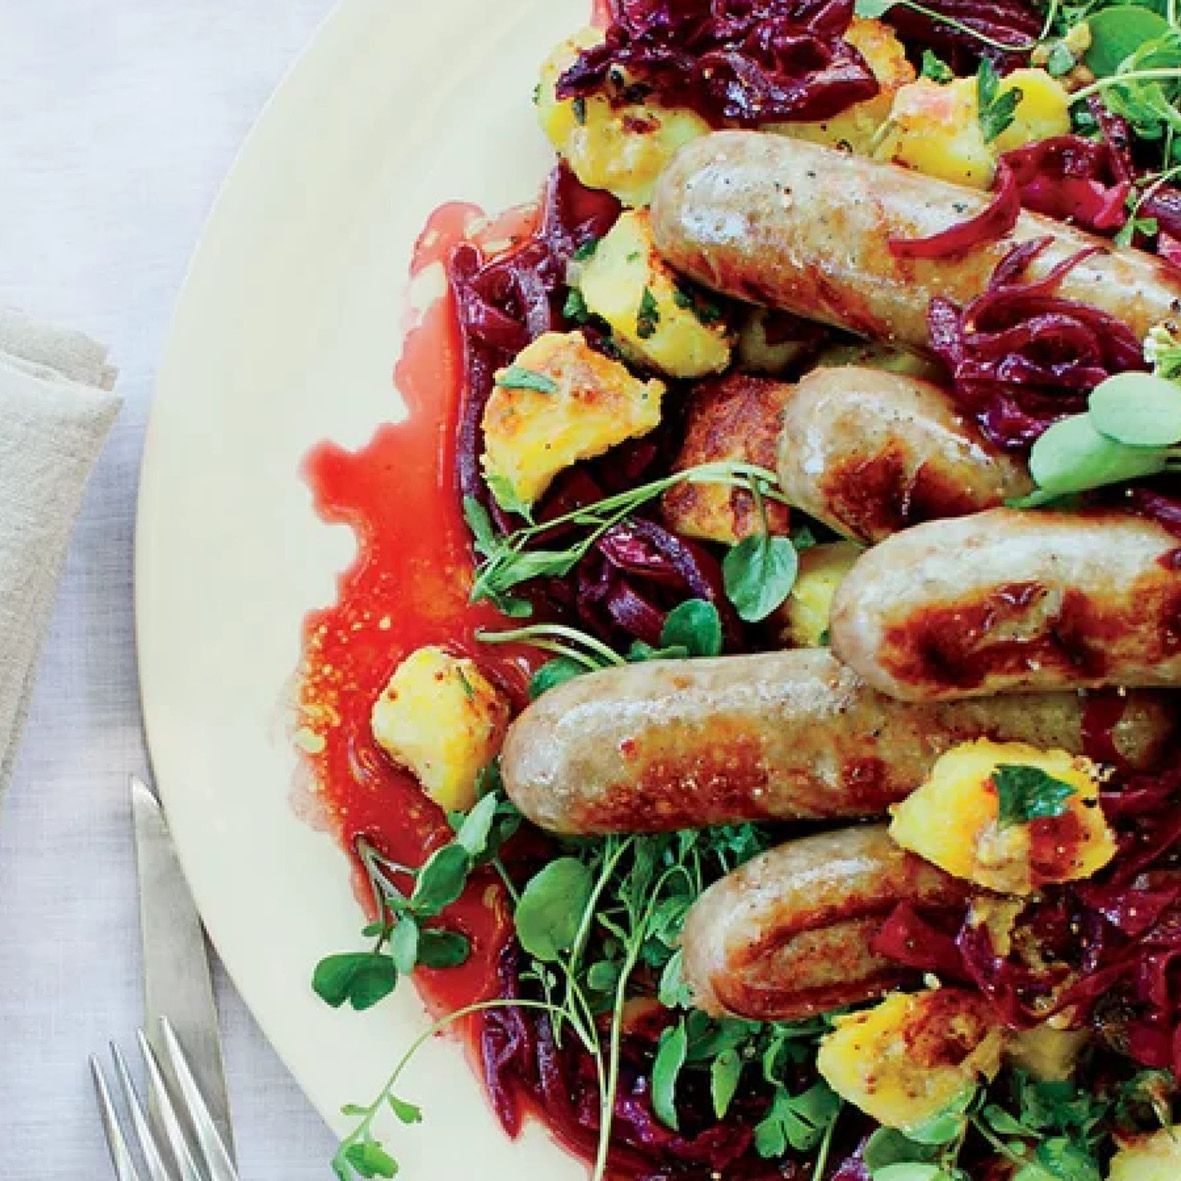 Bratwurst_with_mustardy_fried_potatoes_and_braised_cabbage.jpg